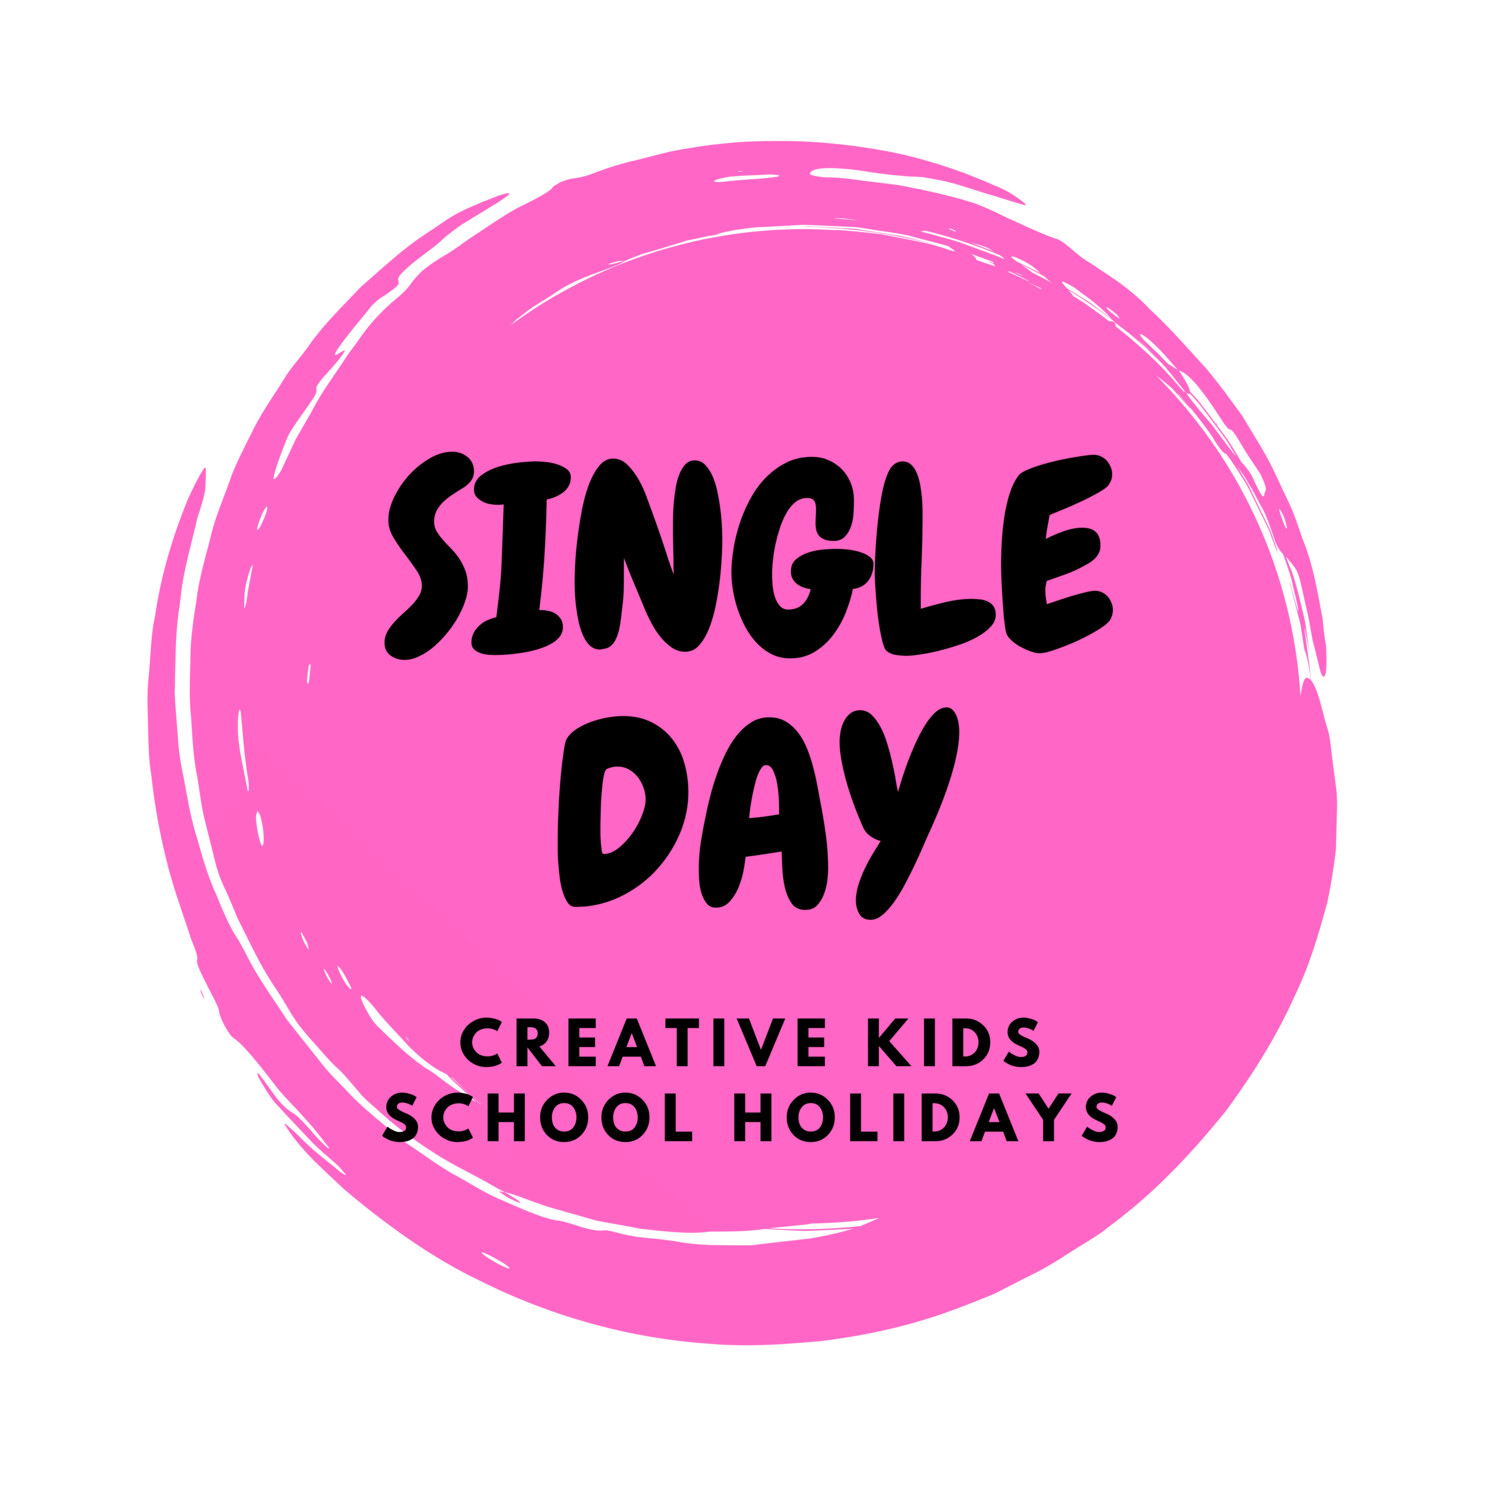 MINECRAFT- Autumn School Holidays Creative Kids - Single Day